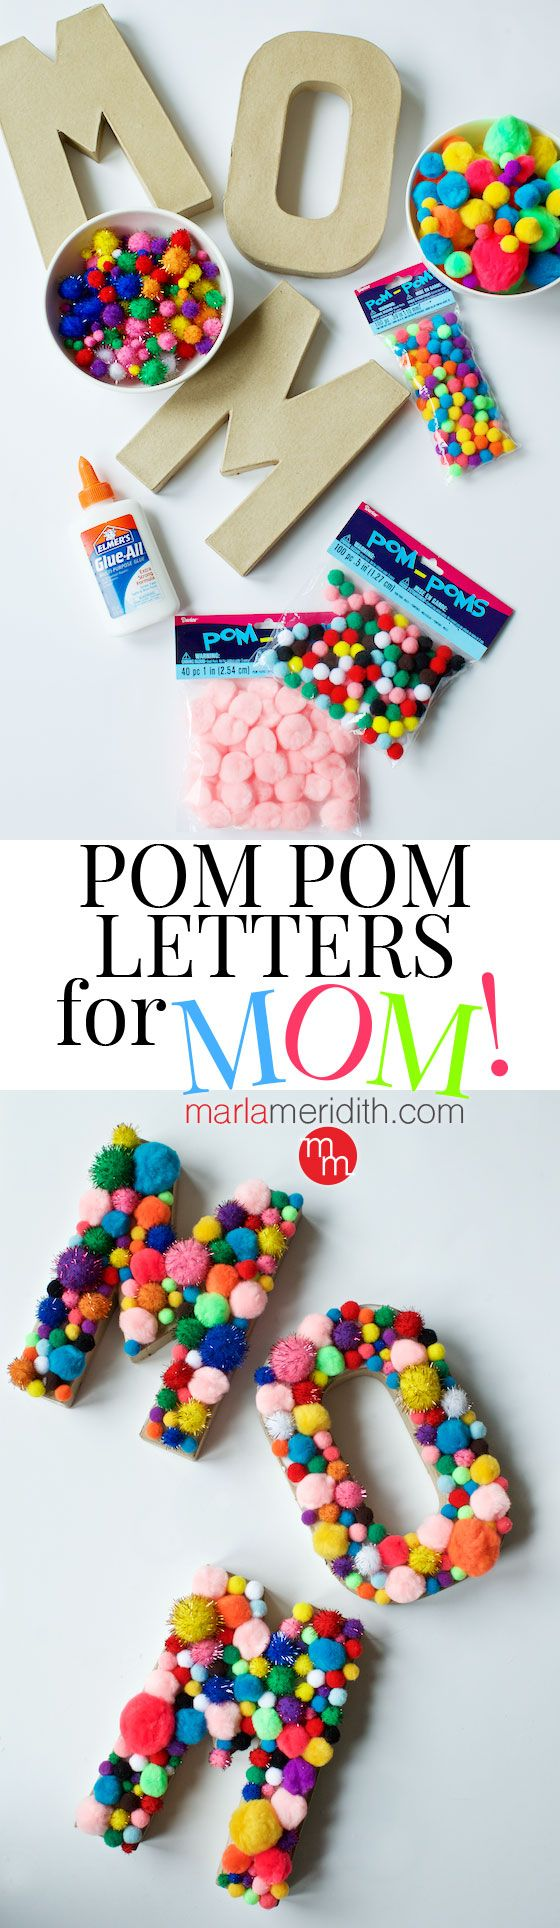 DIY Pom Pom Letters for MOM! A fun craft to make for Mother's Day | MarlaMeridith.com ( @marlameridith )